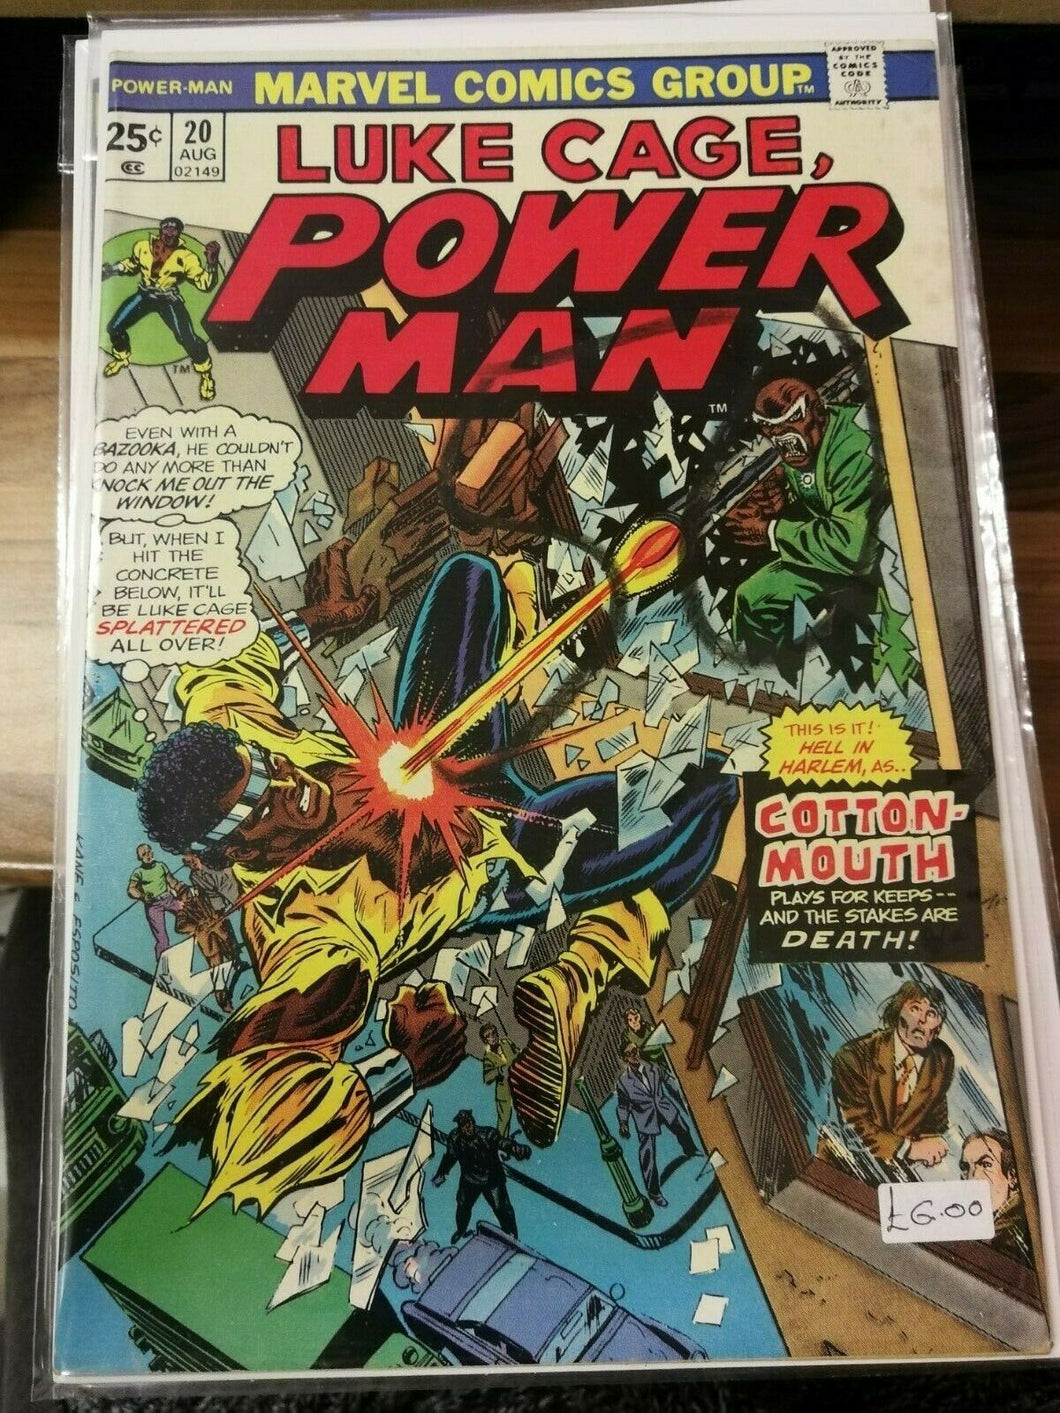 Luke Cage, Power Man #20